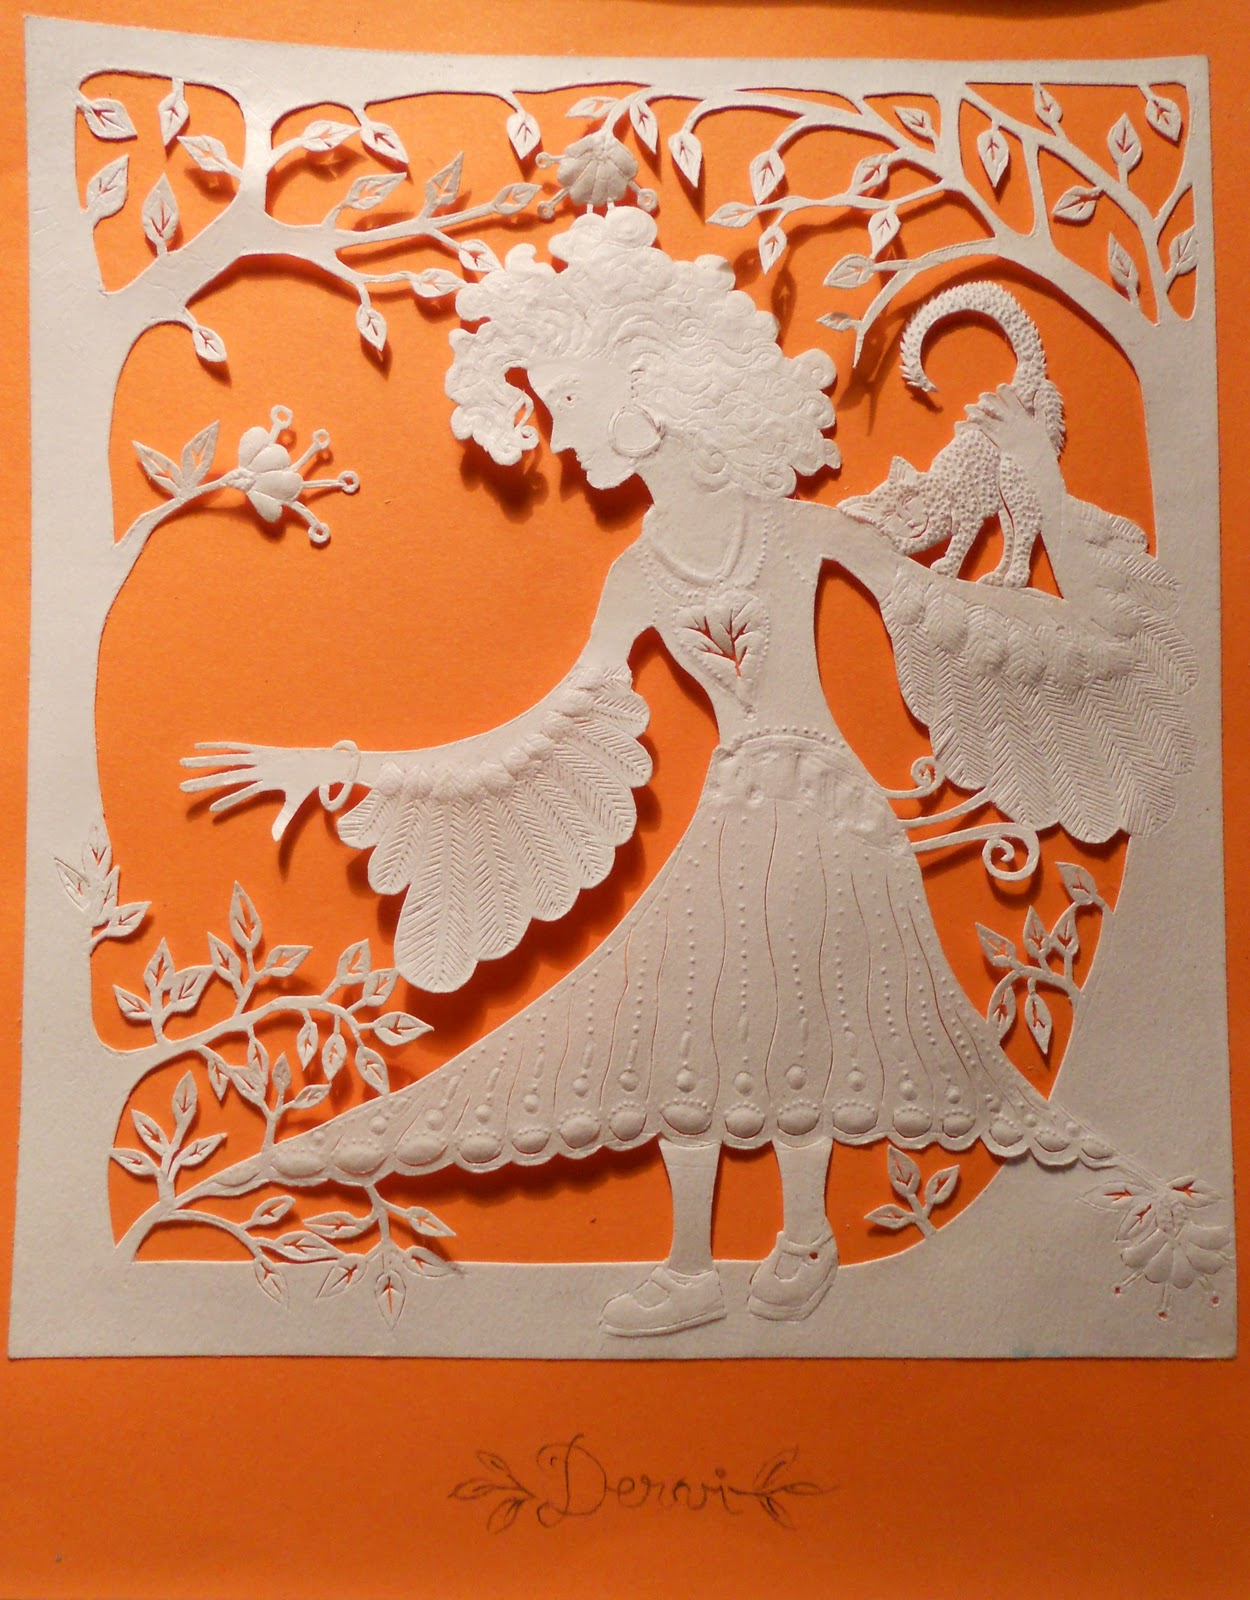 Embossed paper cut-out depicting a young woman that is ready to take flight and start her own life